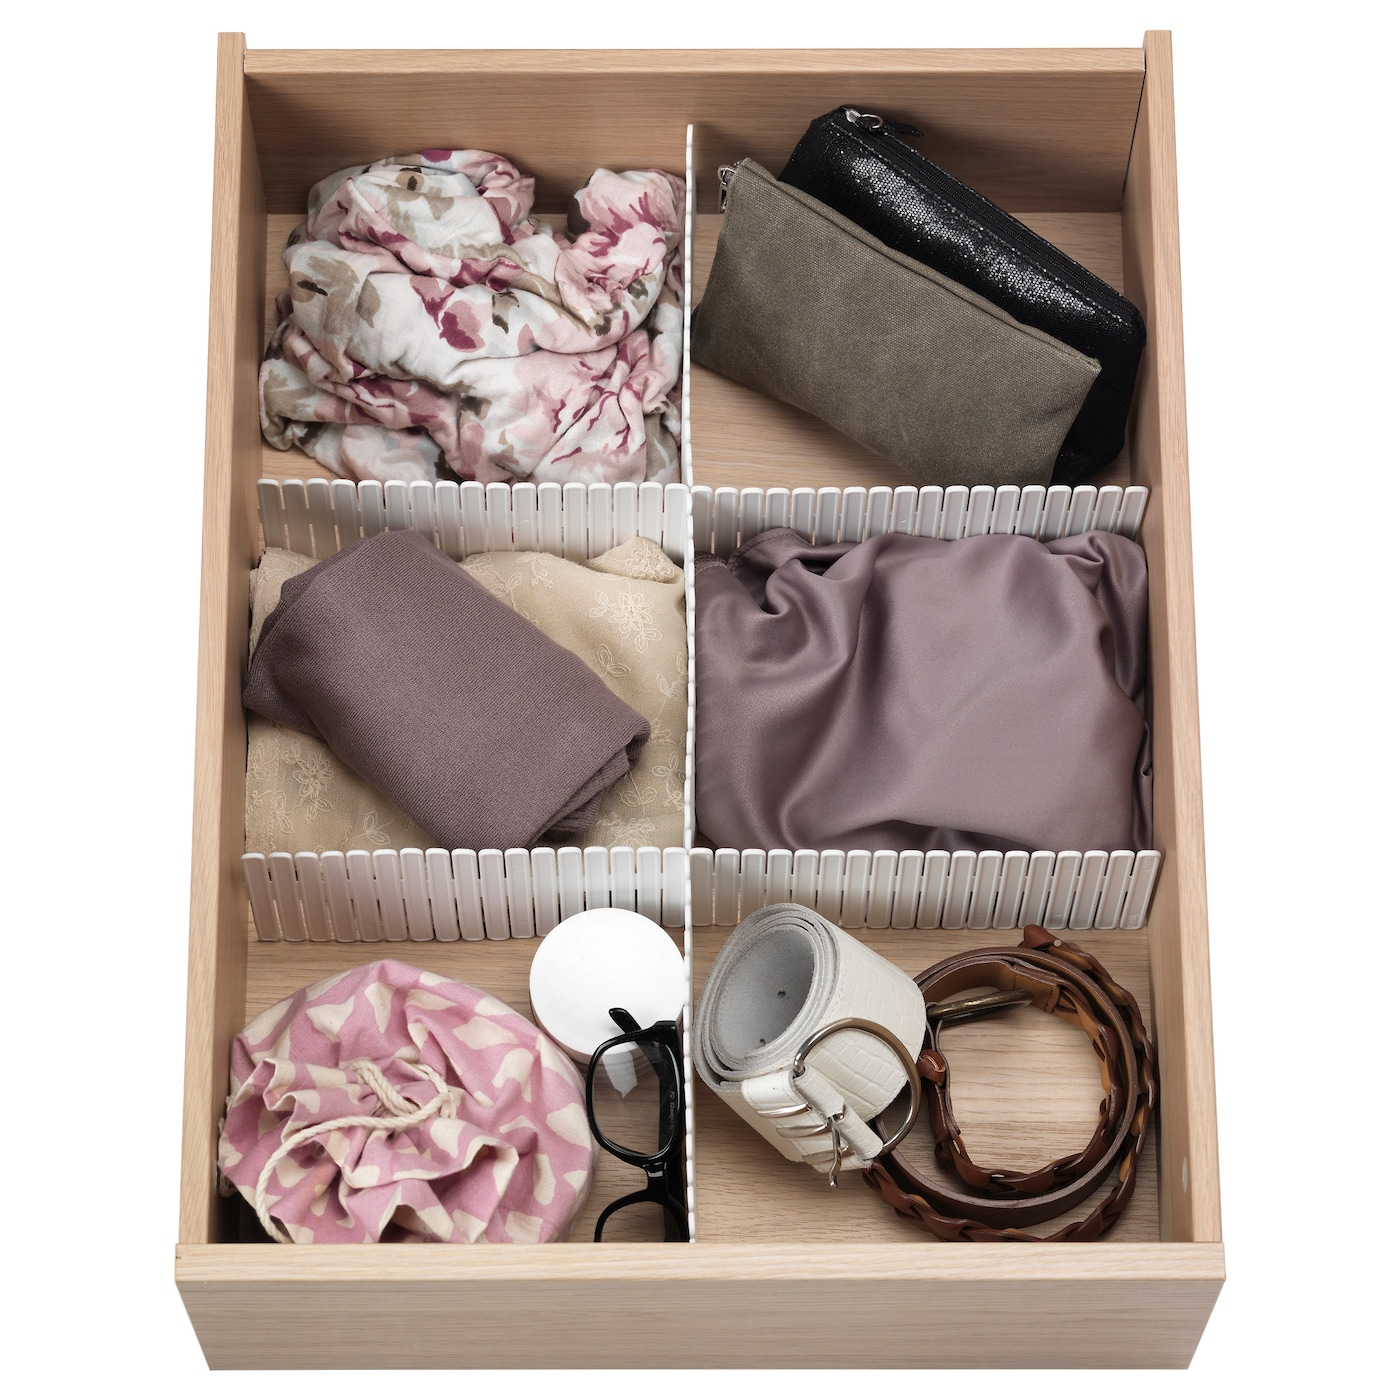 Ikea HÖfta Divider For Drawer If You Want More Compartments Just Add Dividers